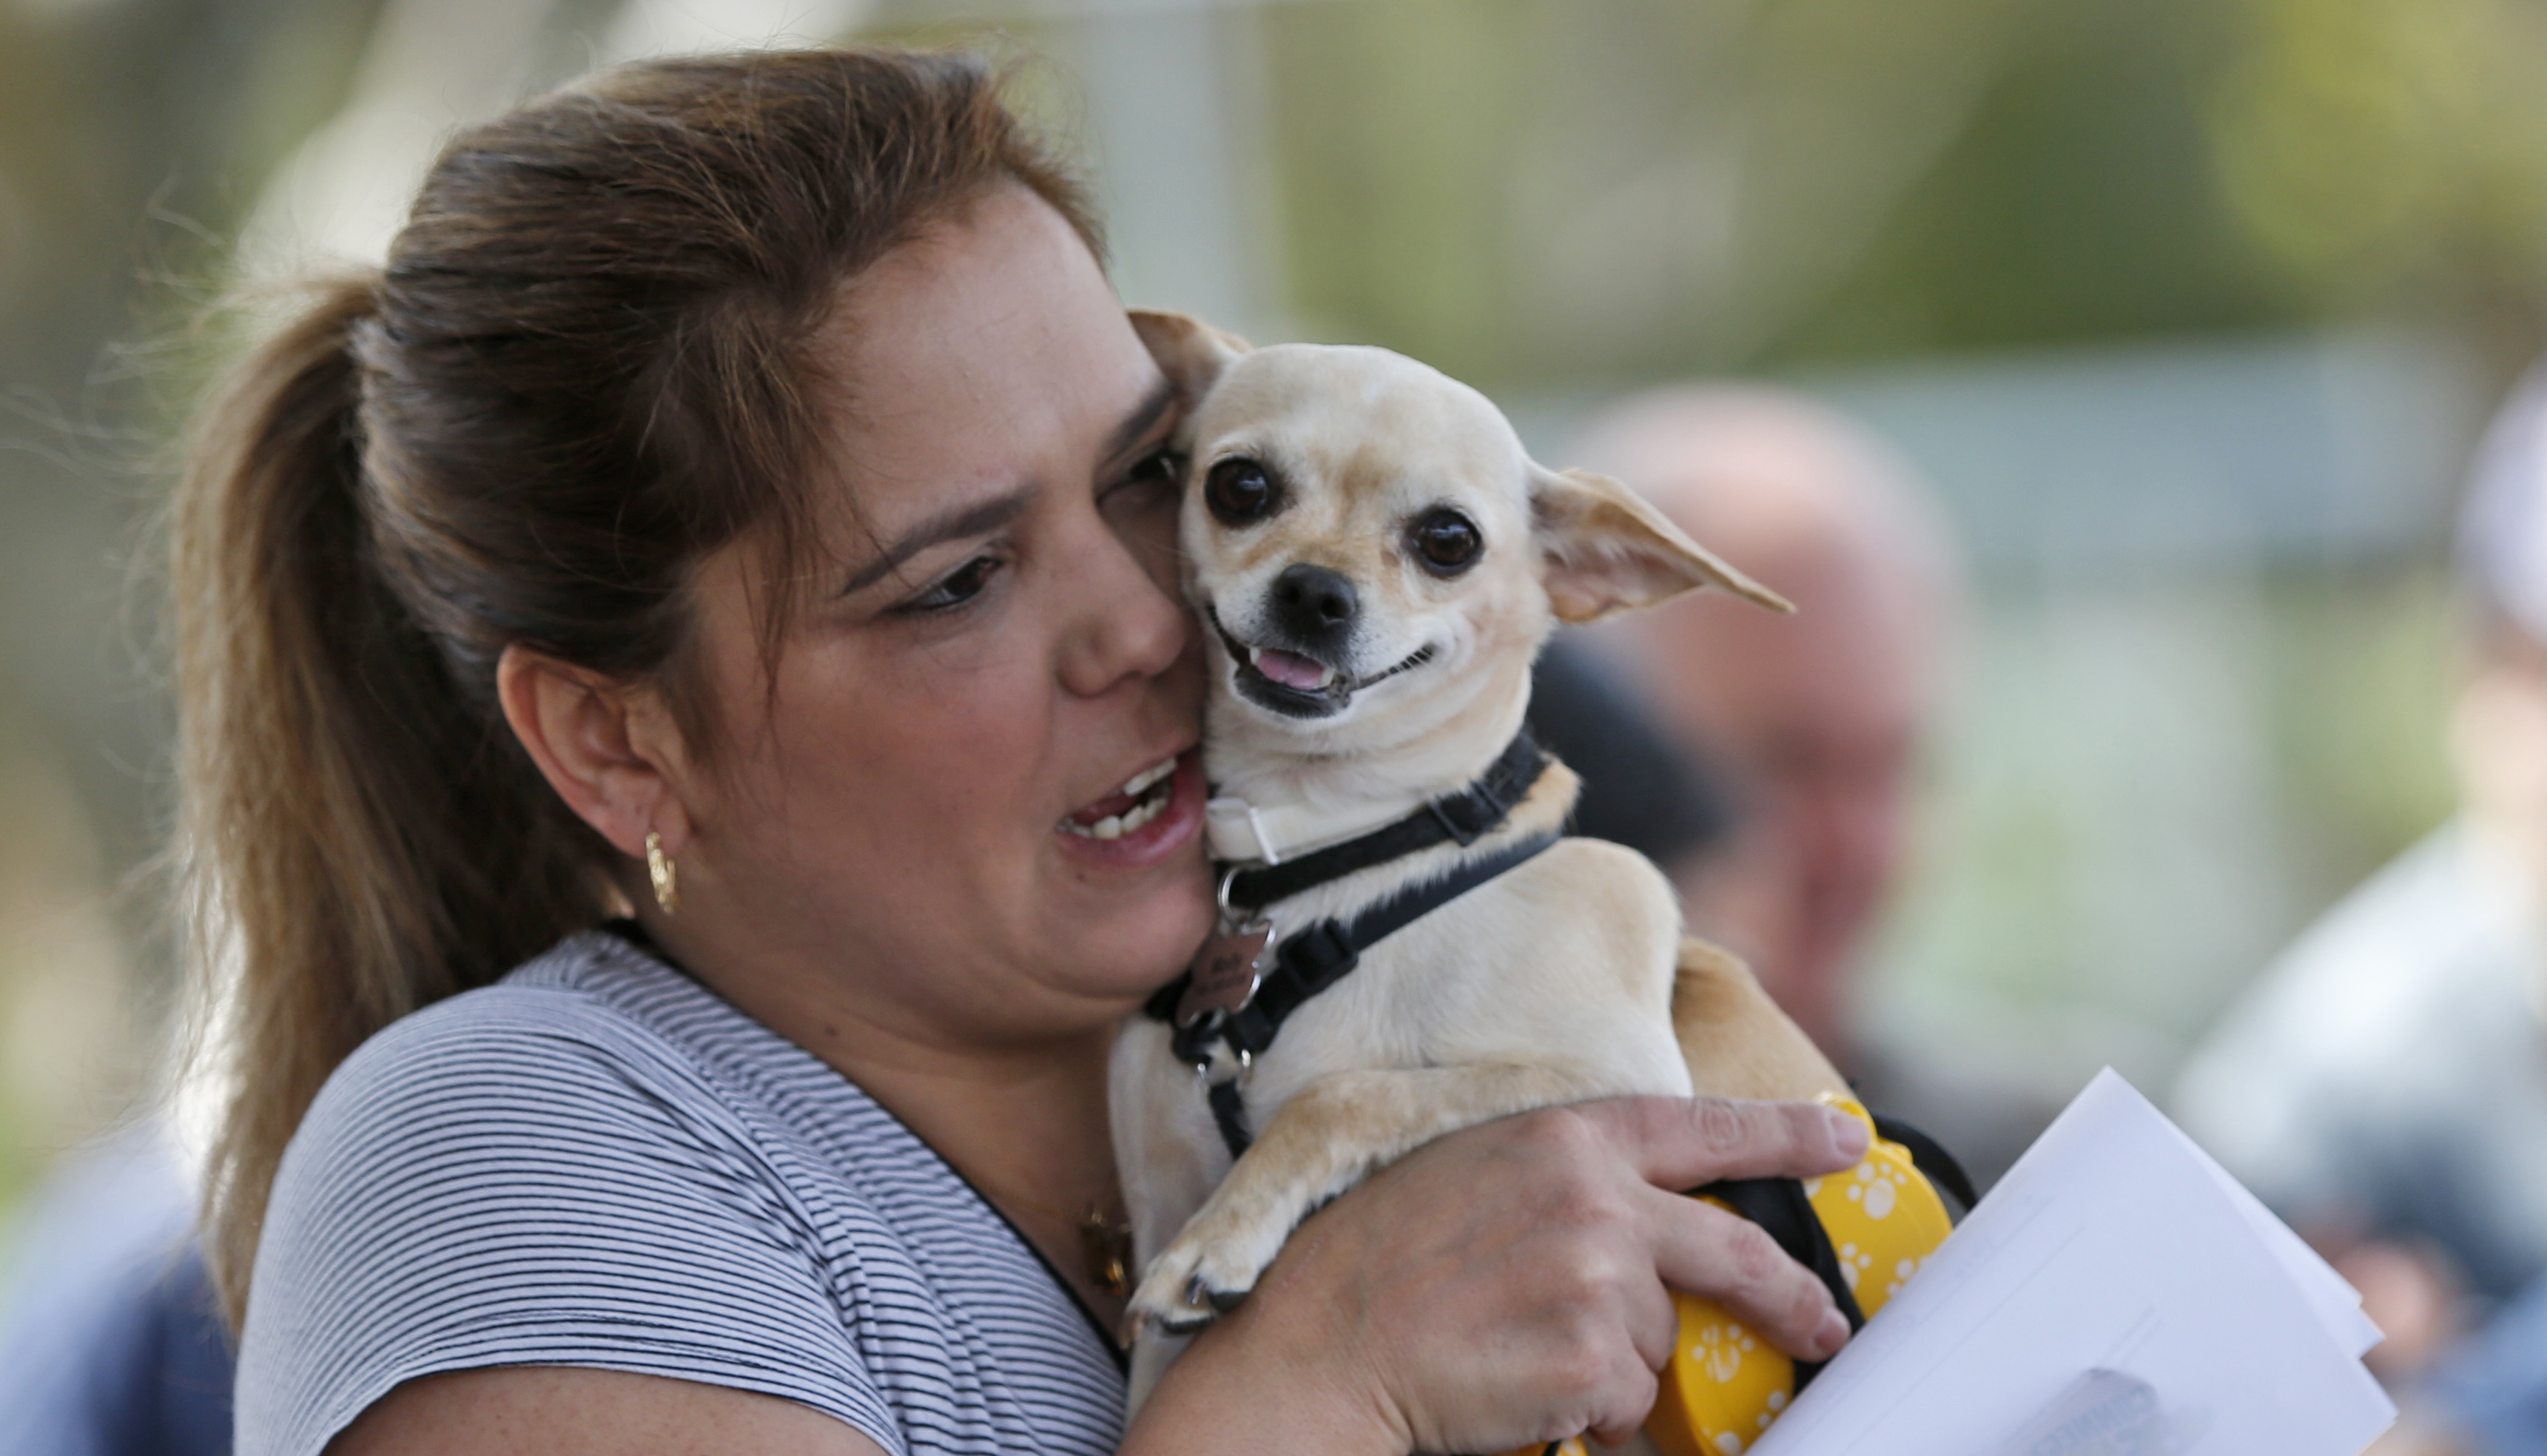 Anabel Marta holds her dog Molly as she waits to have her vaccinated at a mobile clinic, Thursday, March 9, 2017, in Miami. Miami-Dade Animal Services was vaccinating pets in the Kendal neighborhood where two confirmed cases of rabid raccoons had been reported. (AP Photo/Wilfredo Lee)